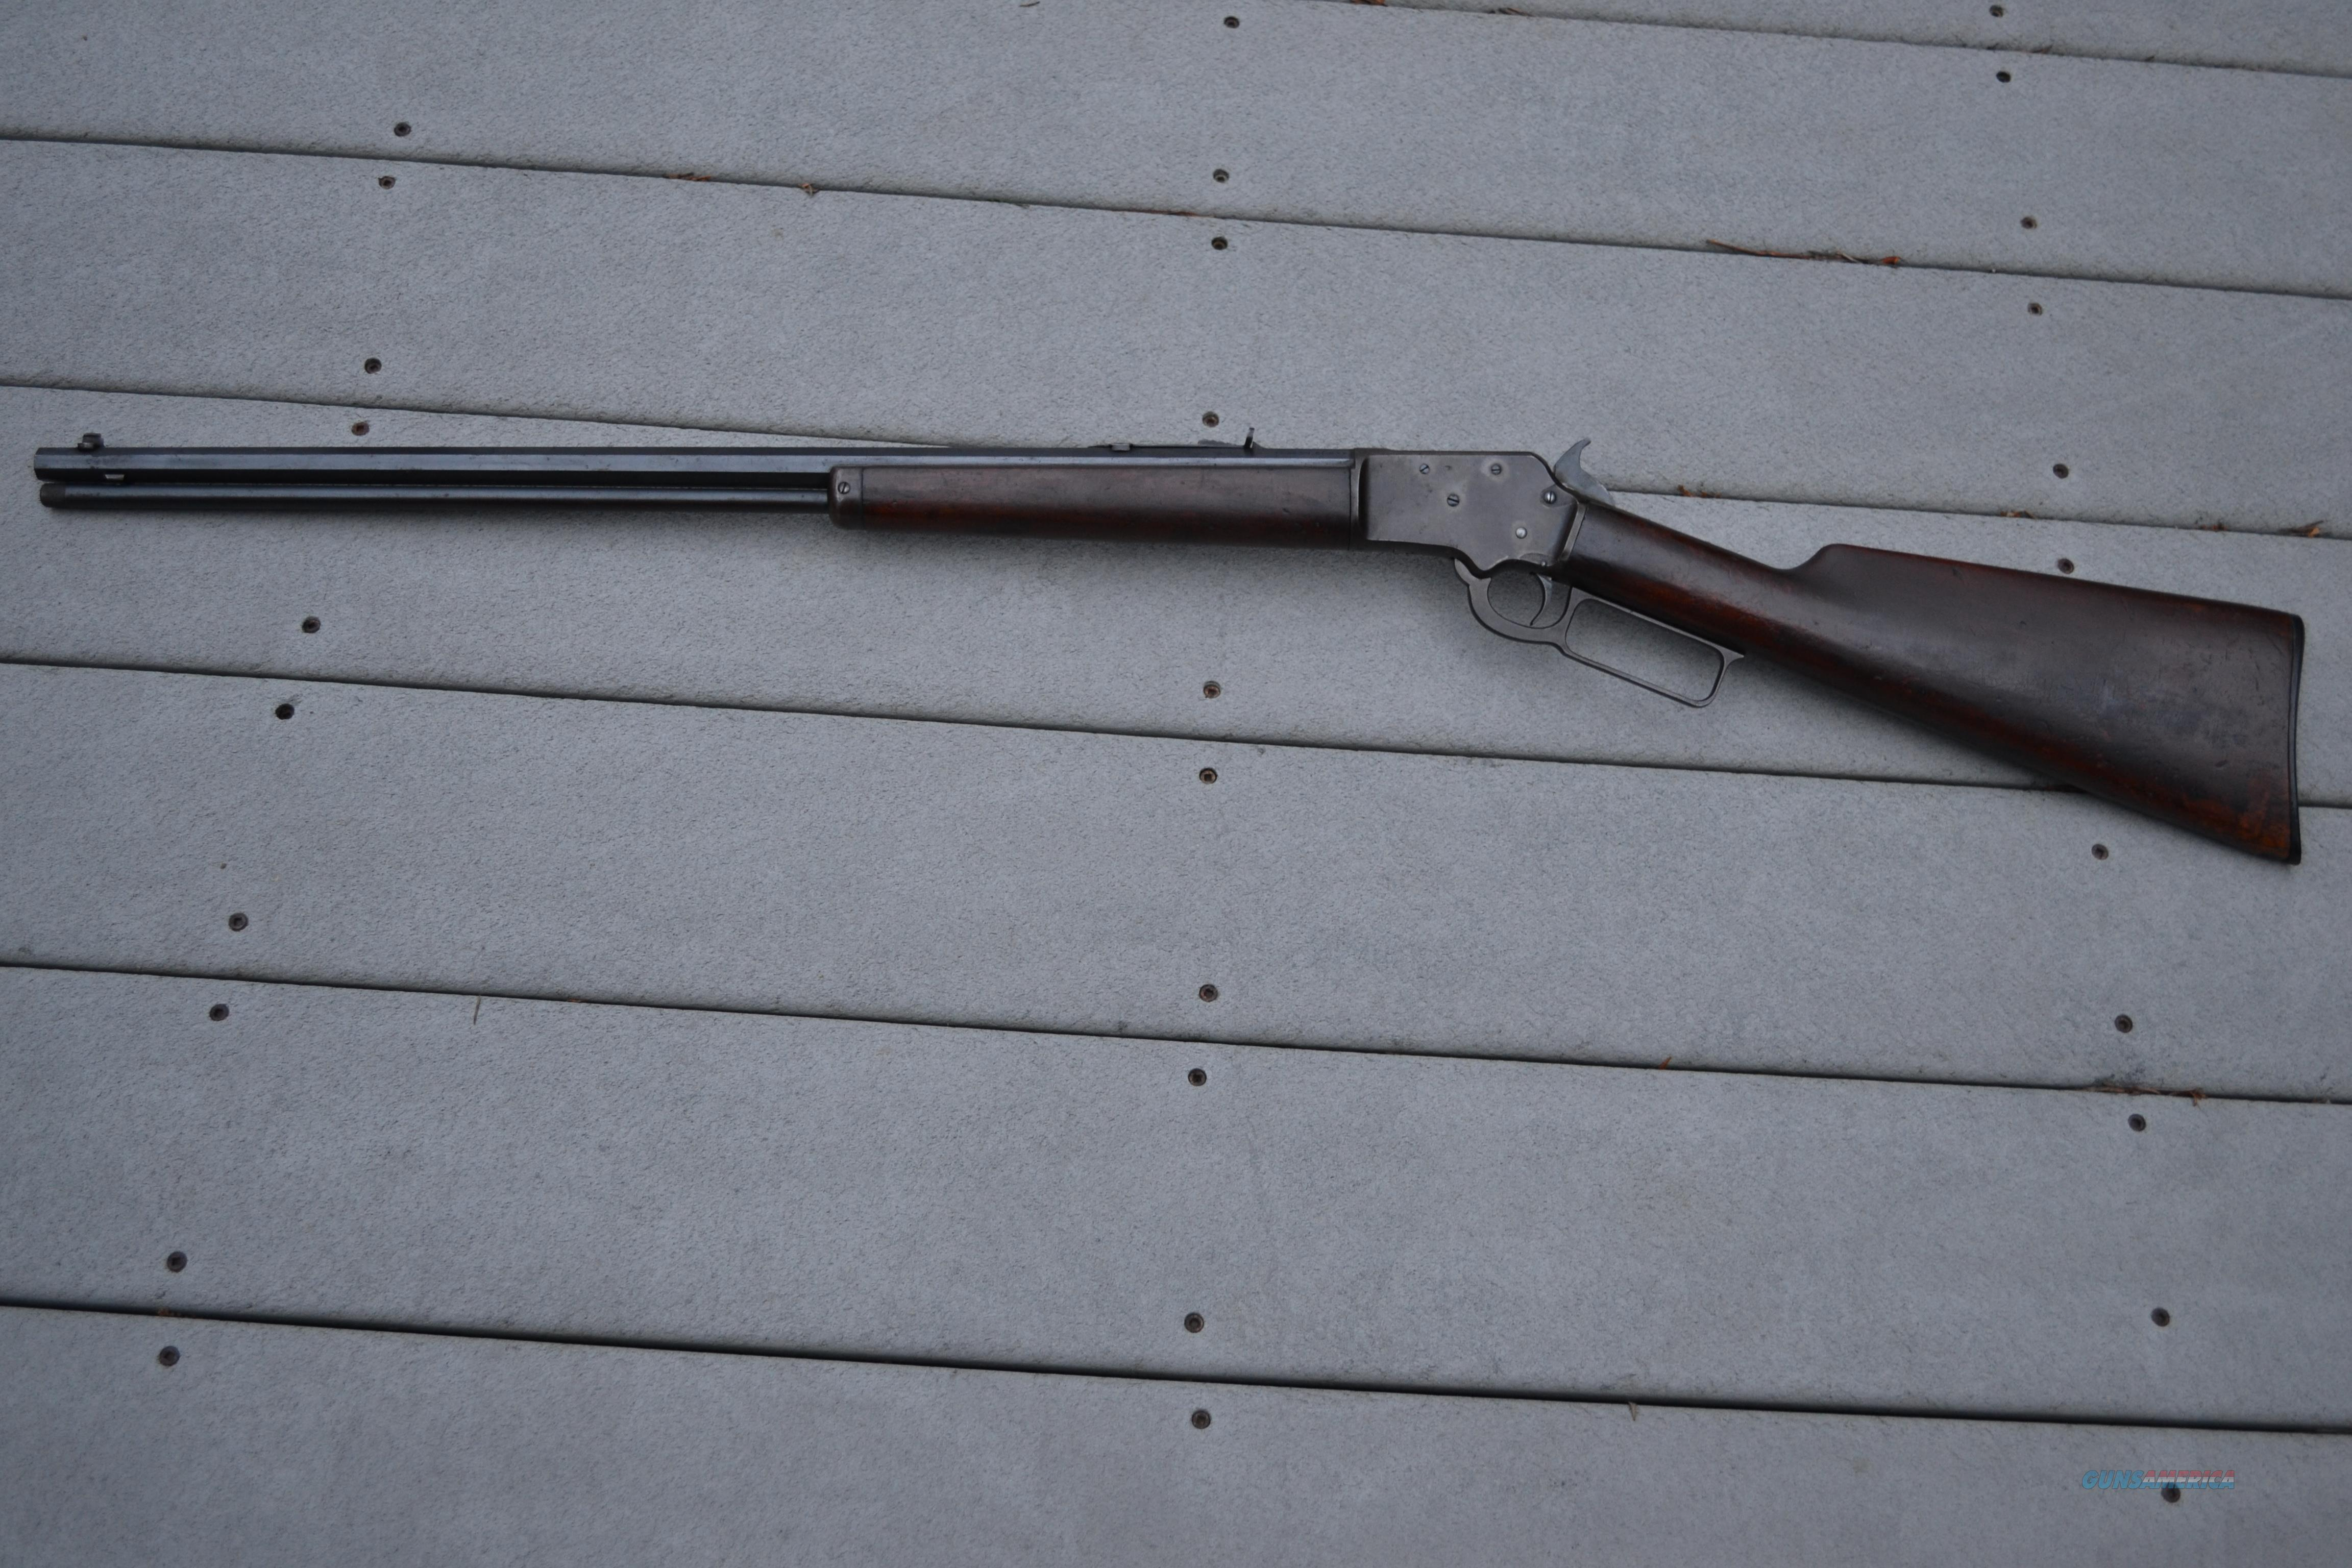 Marlin 1897 Lever 22 S, L, LR  Guns > Rifles > Marlin Rifles > Pre-1899